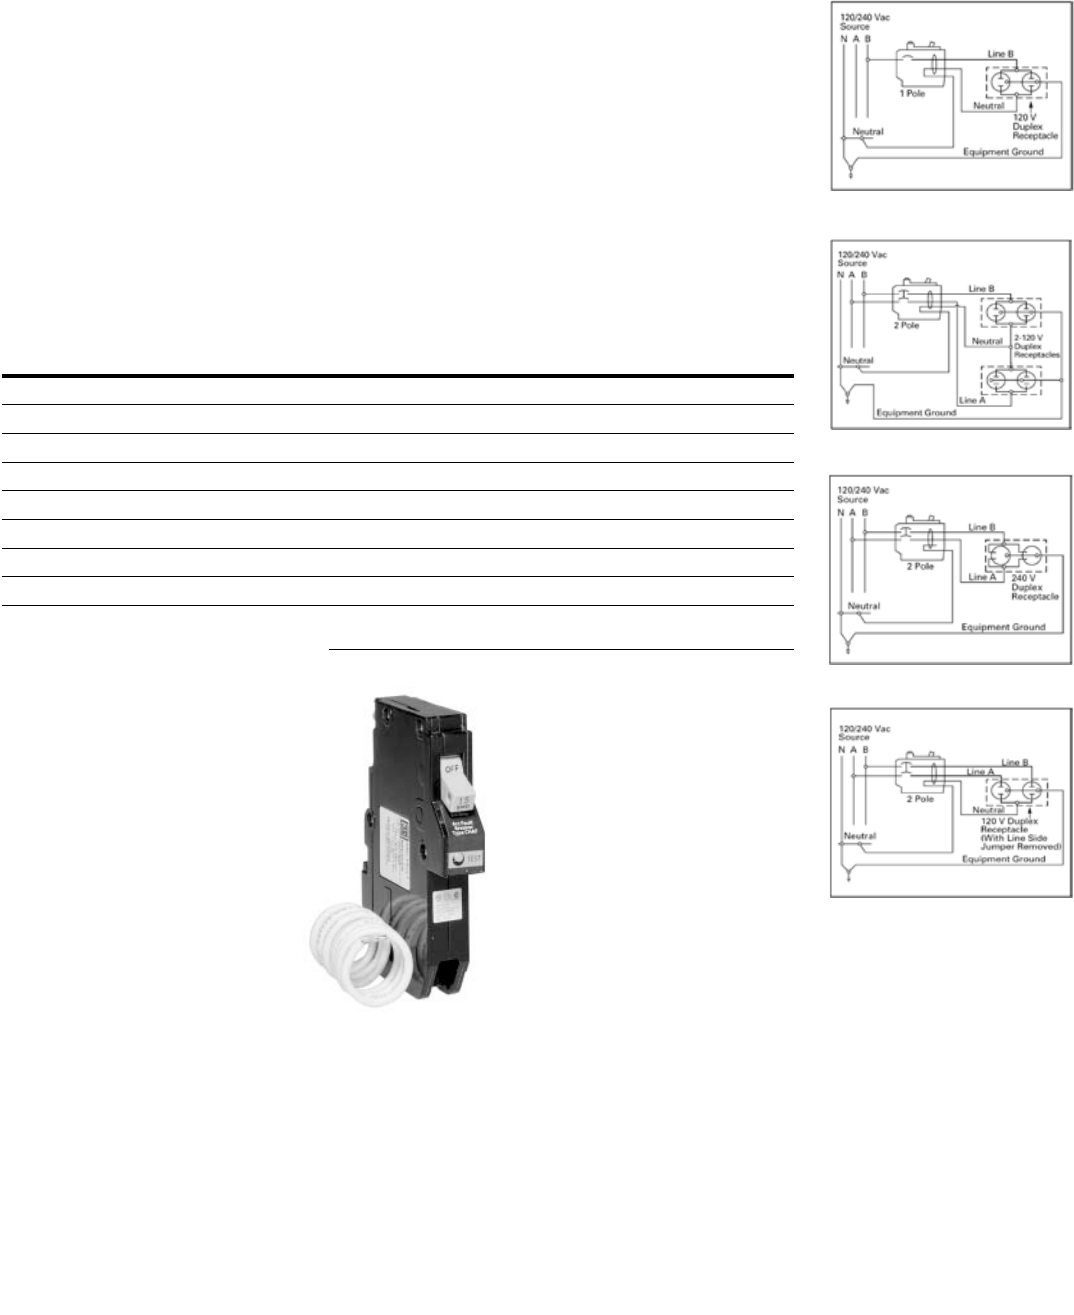 29636 Catalog Esfi Afci Vs Gfci National Electrical Safety Month 2014 Residential Light Commercial Distribution Products Pg3102pk September 2011 Eatoncanadaca 29